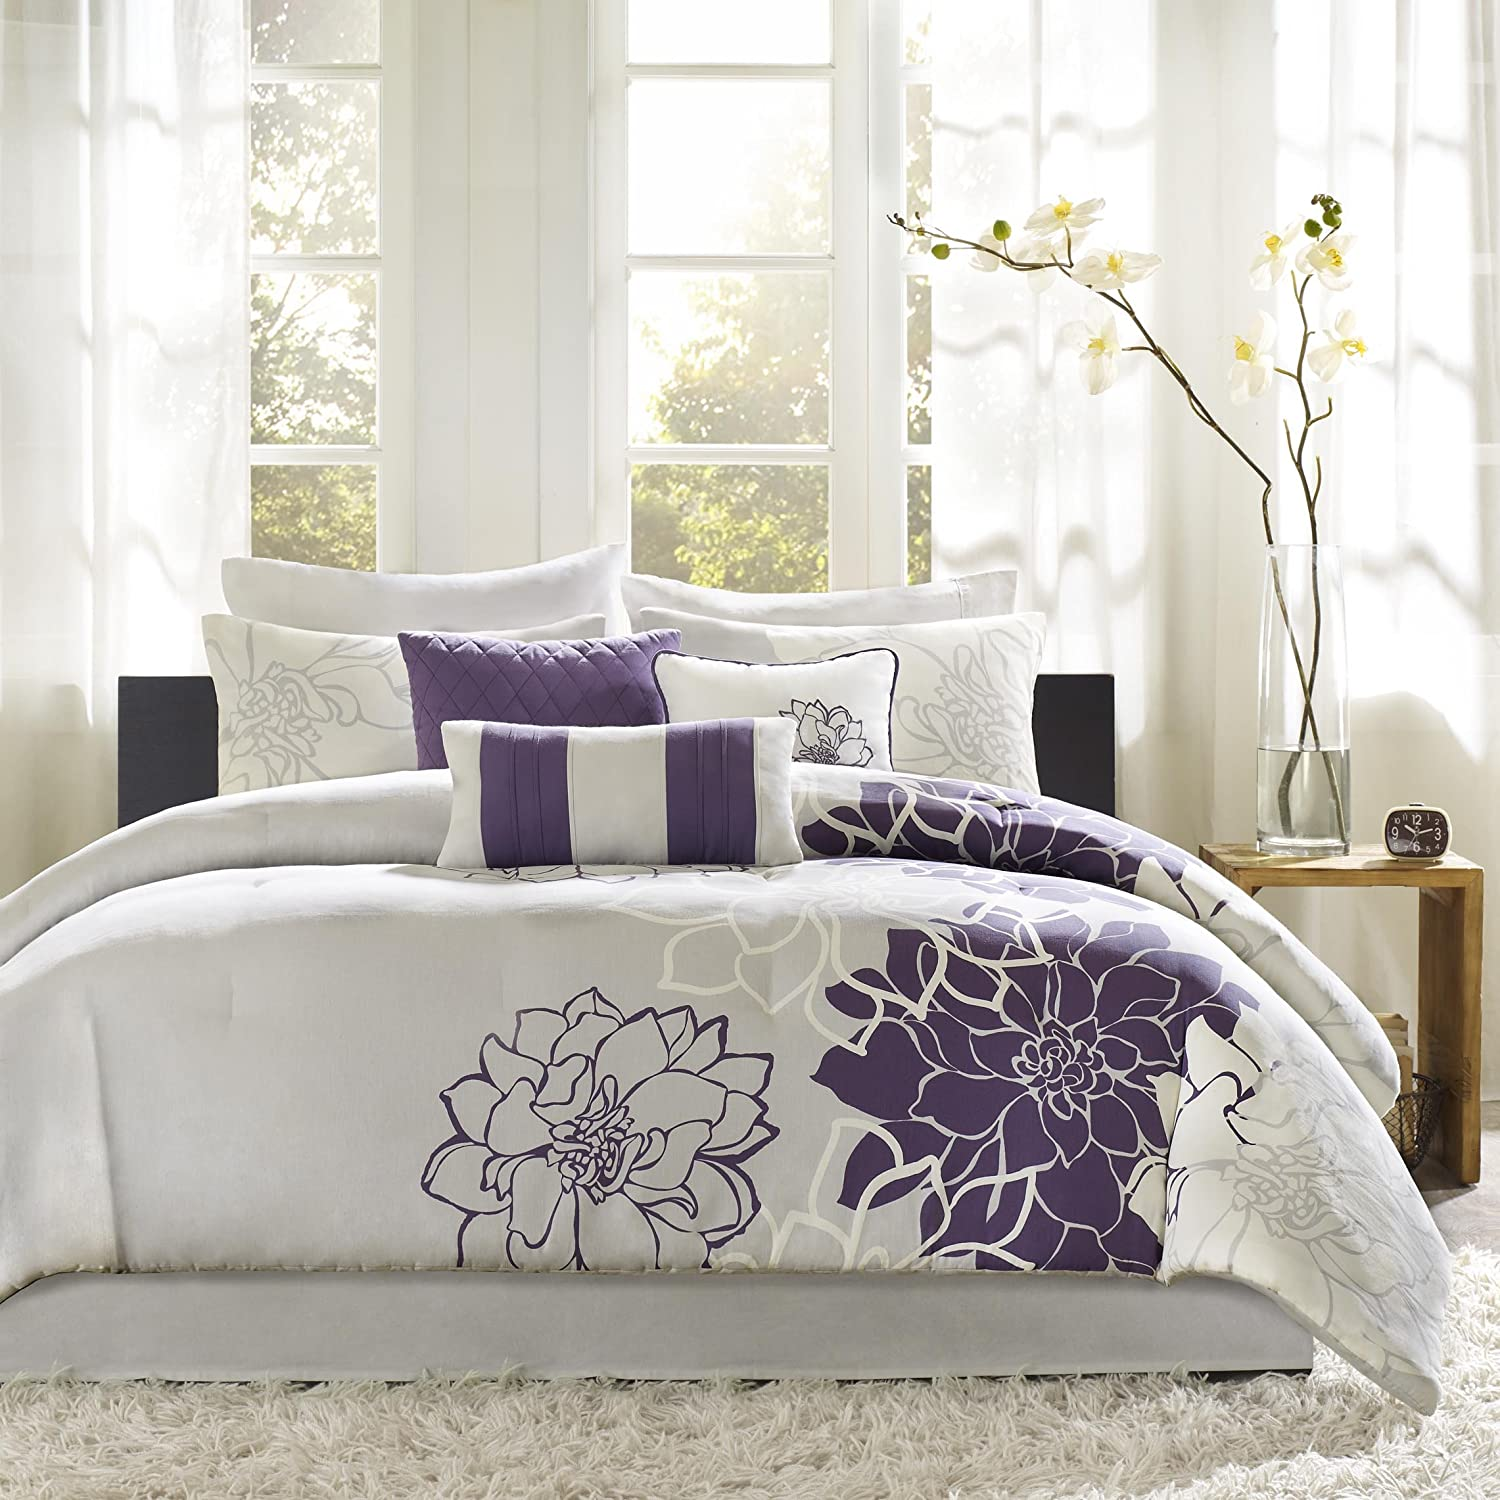 Madison Park Lola 7 Piece Print Comforter Set, Queen, Grey/Purple